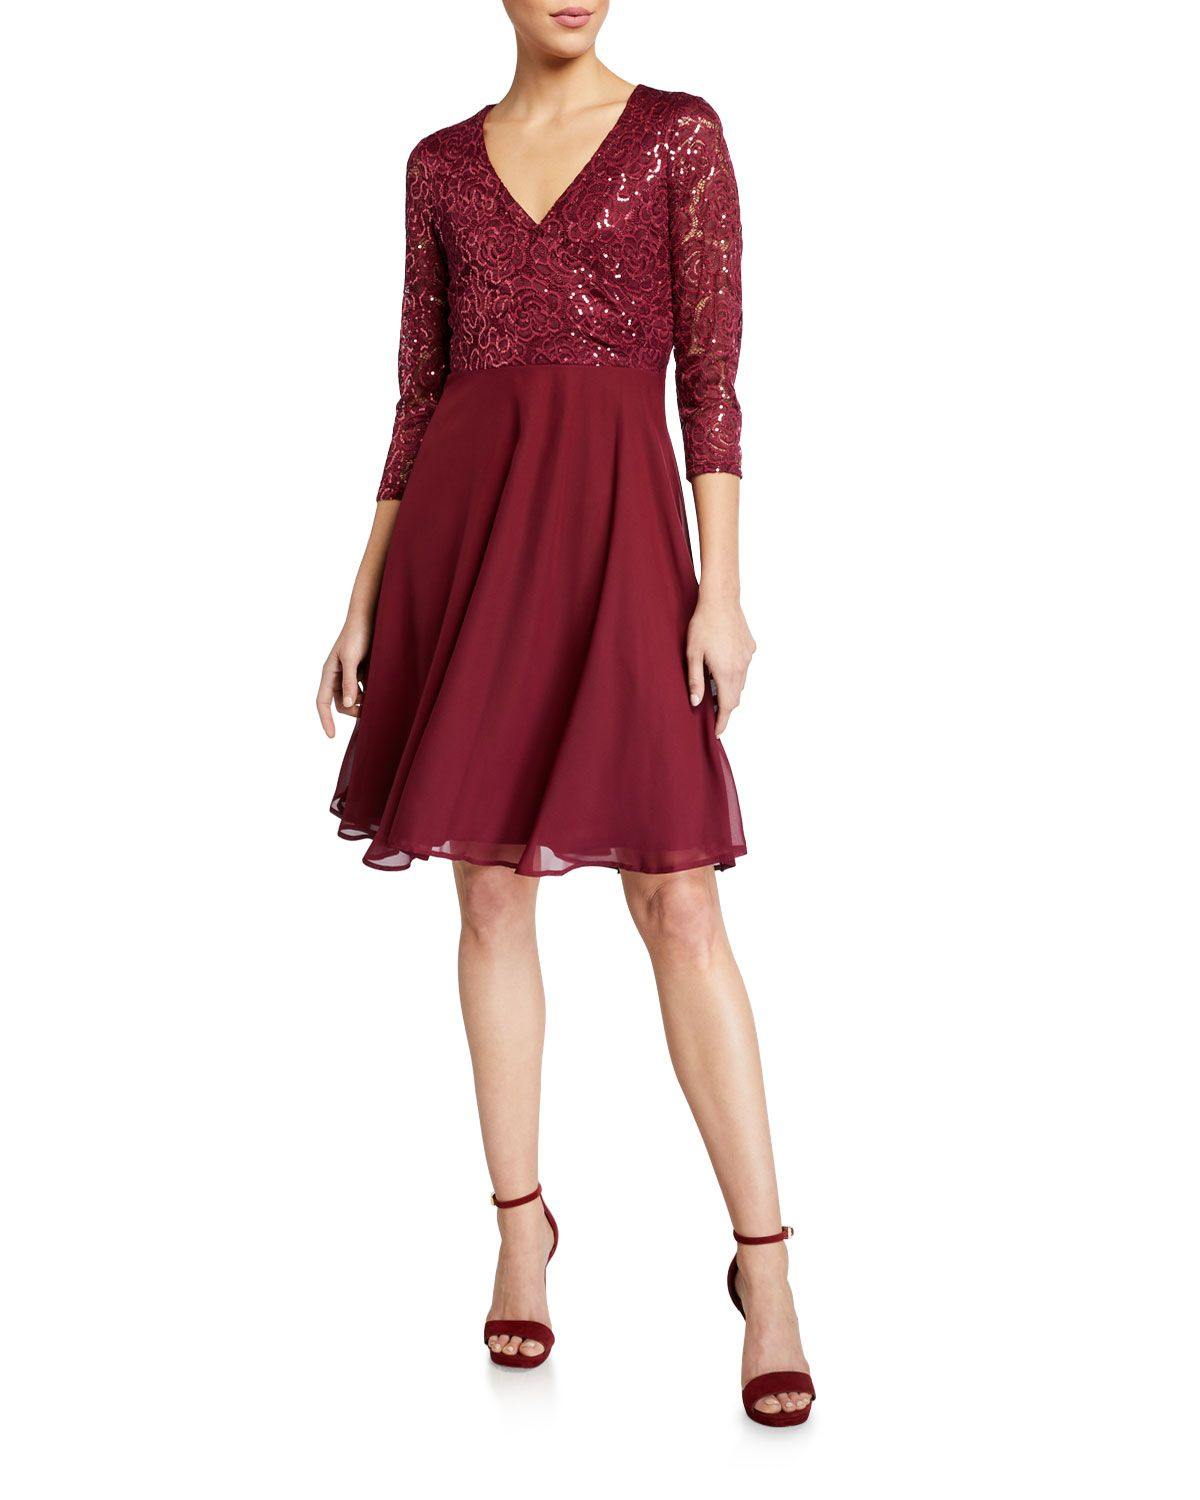 Marina Lace Chiffon Fit And Flare Cocktail Dress Marina Cloth Cocktail Dress Lace Cocktail Dress Fit And Flare Cocktail Dress [ 1500 x 1200 Pixel ]